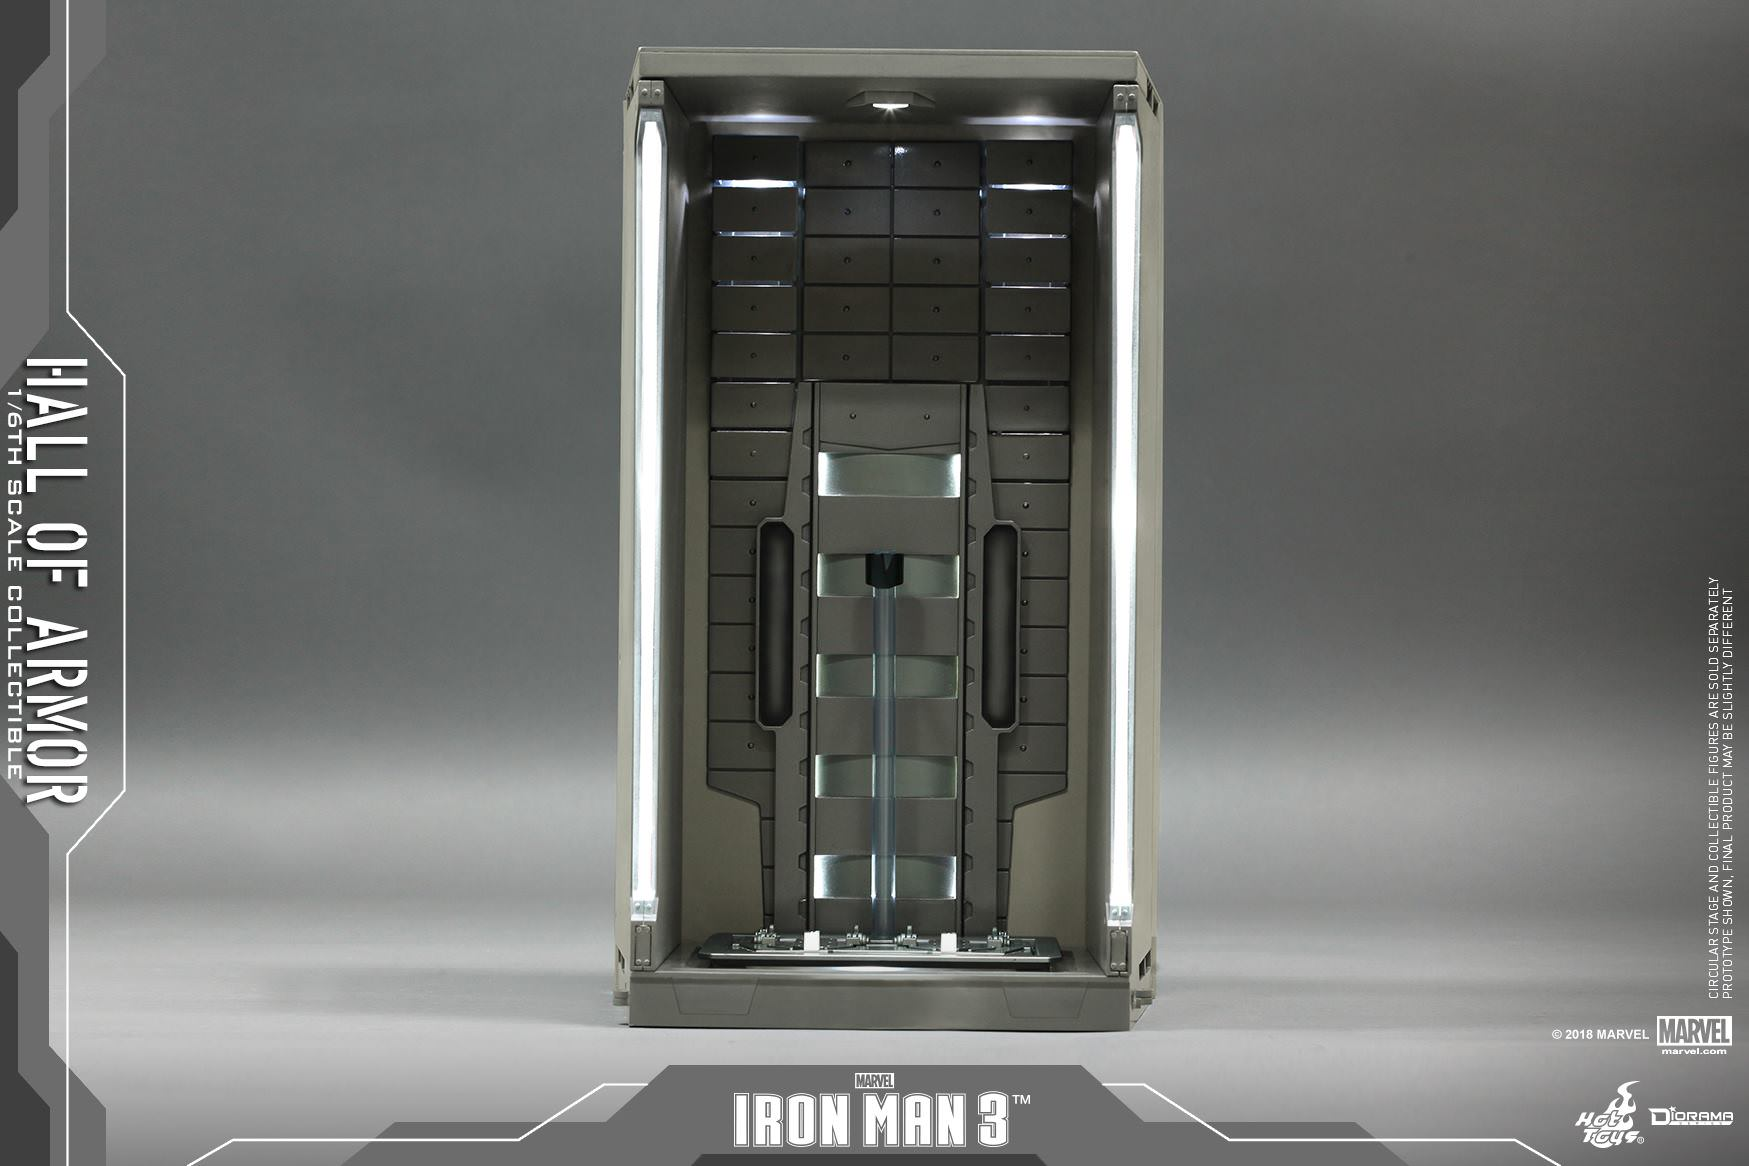 Hot Toys DS 01 Iron Man 3 : Hall of Armor – Hot Toys Complete Checklist